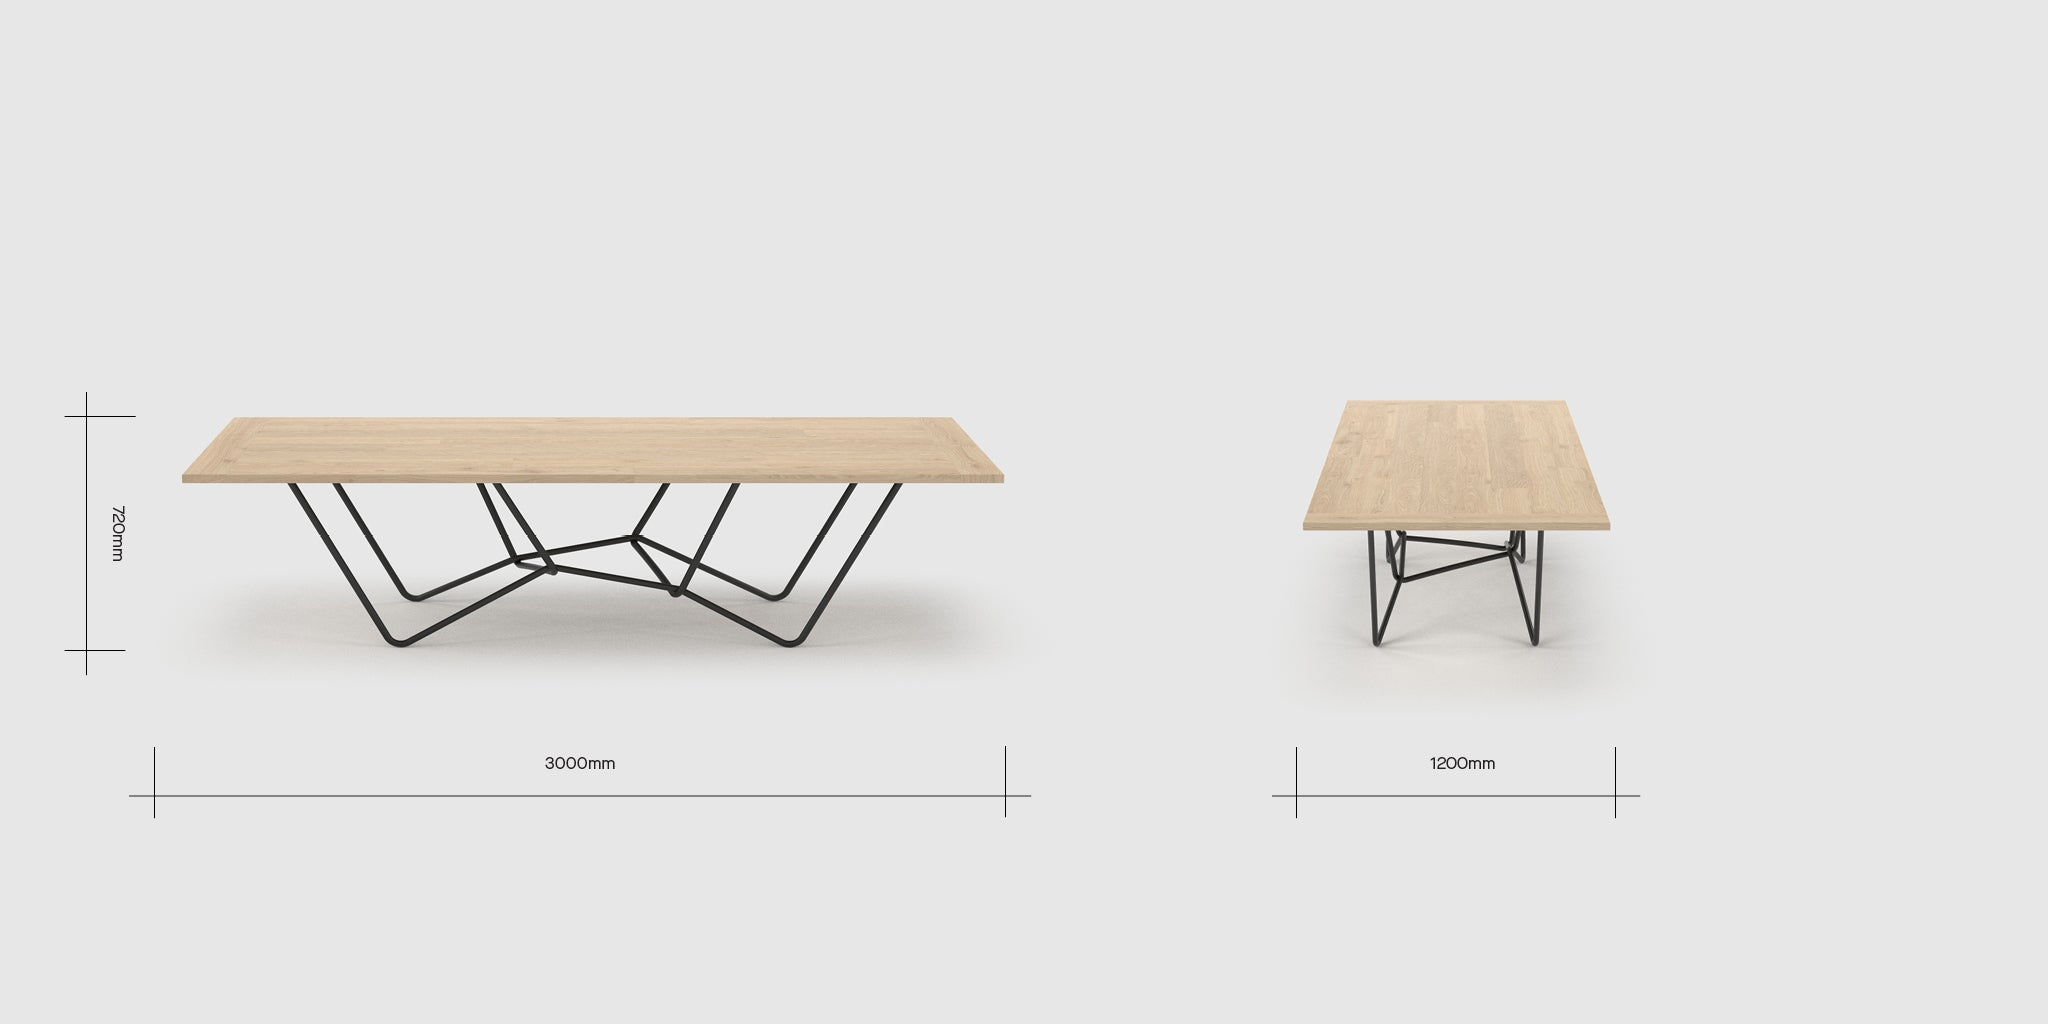 String 10 Person Table Dimensions